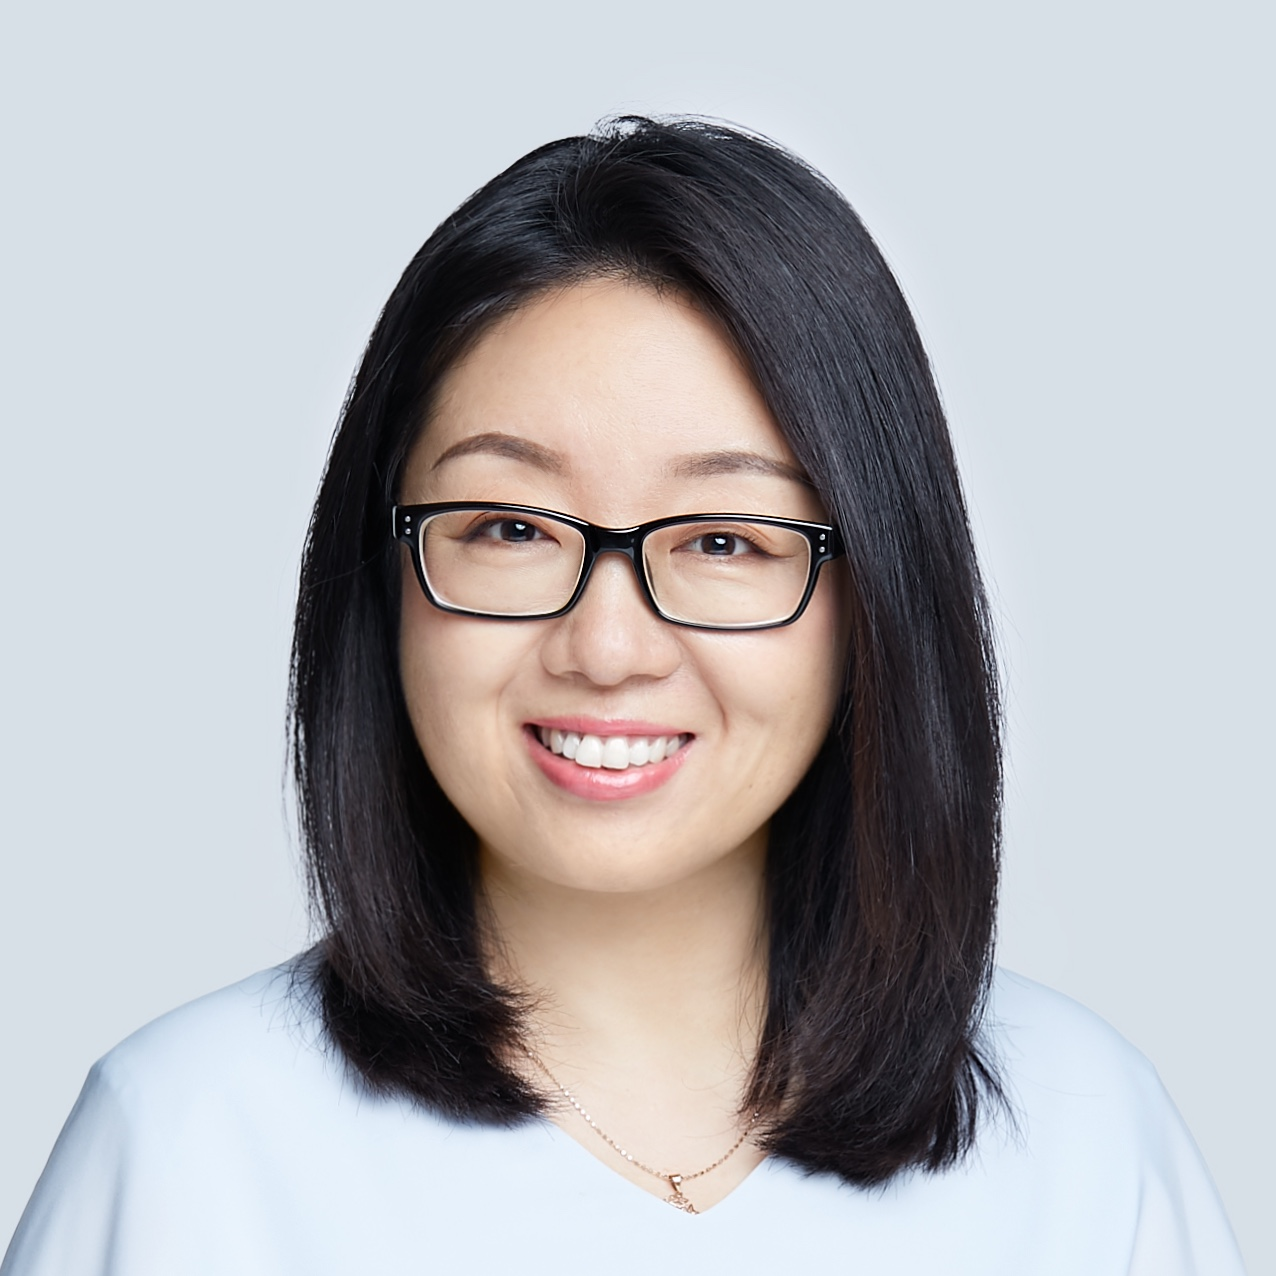 Ona Xiang 项兰苹